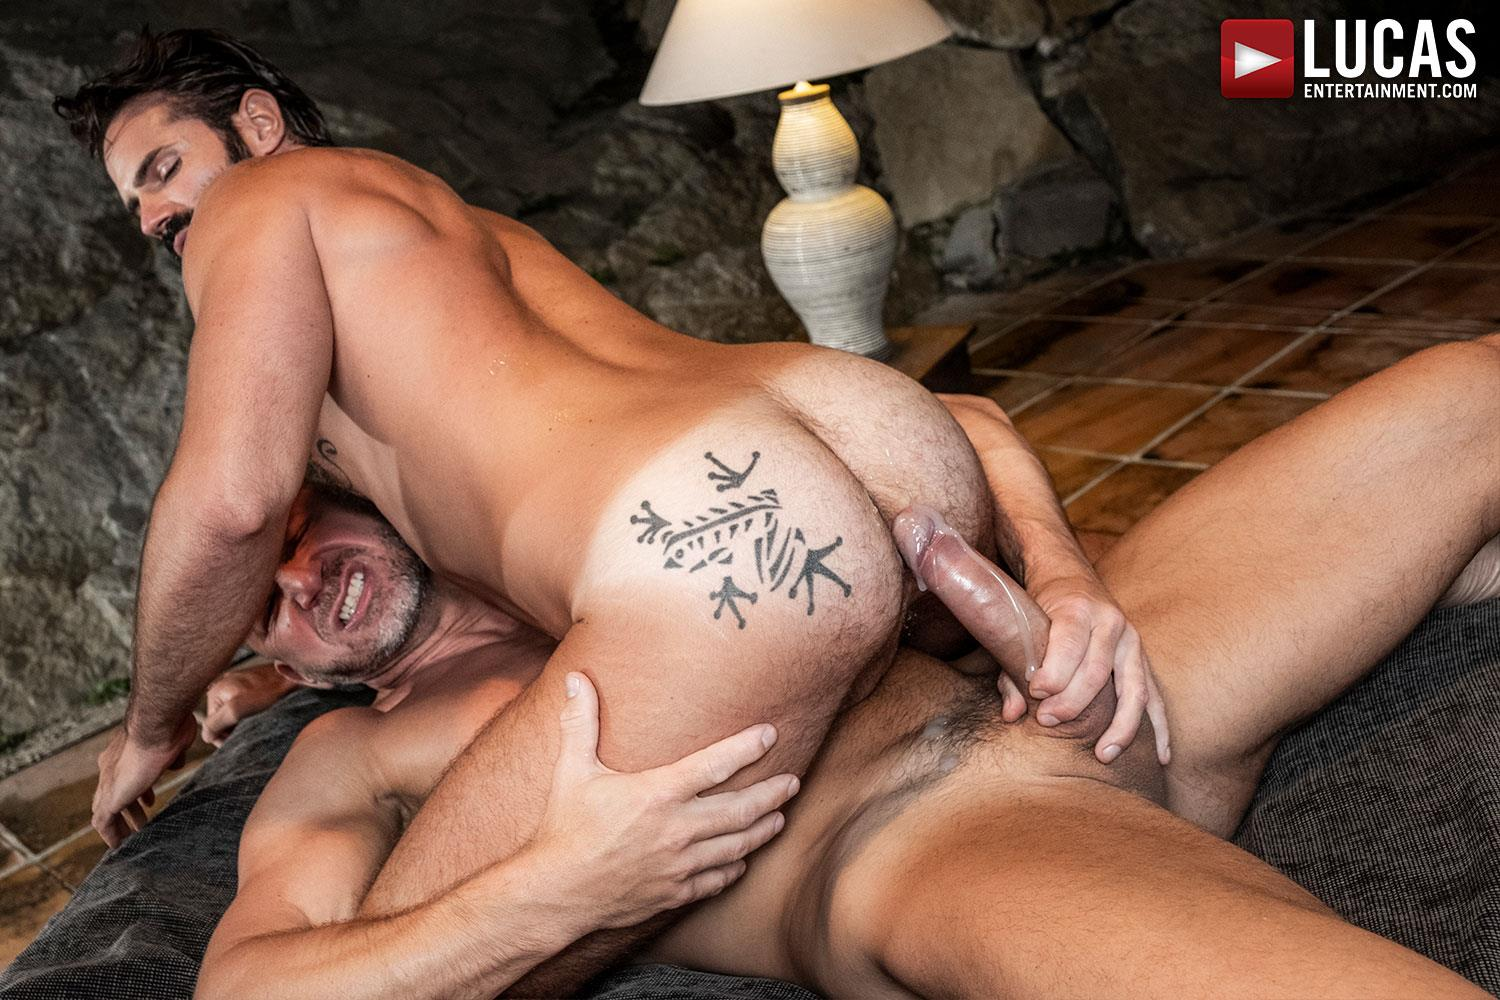 Lucas-Entertainment-Tomas-Brand-and-Dani-Robles-Big-Dick-Daddy-Barebacking-Younger-18 Muscle Daddy Tomas Brand Breeds Dani Robles With His Big Uncut Cock